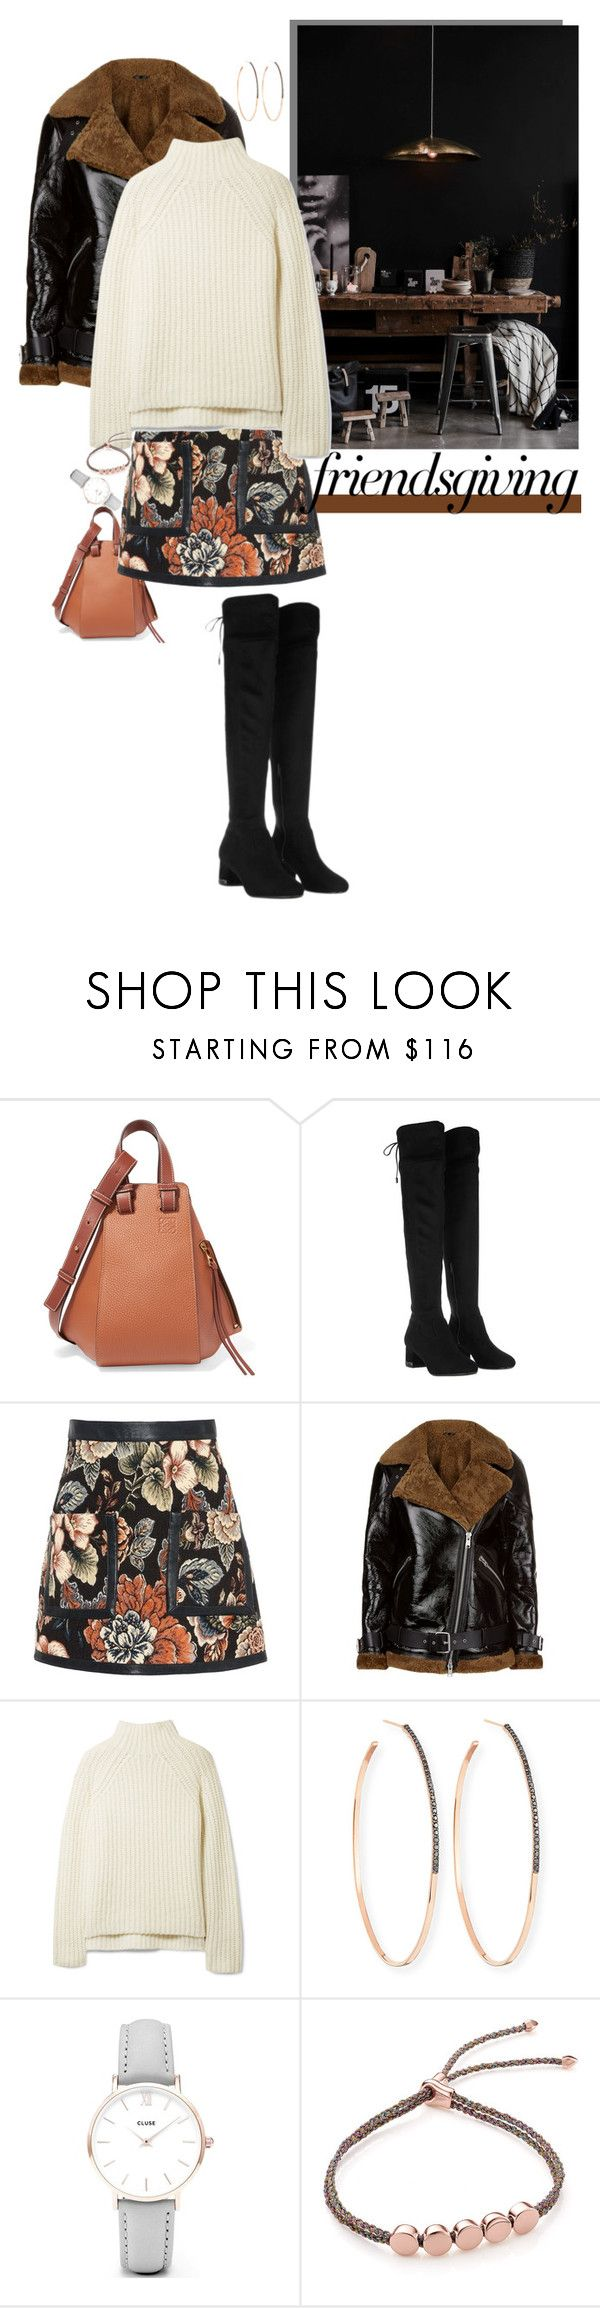 """""""Friendsgiving: Norwegian Wood"""" by shift ❤ liked on Polyvore featuring Loewe, Michael Kors, STELLA McCARTNEY, AllSaints, Theory, Lana, CLUSE and Monica Vinader"""